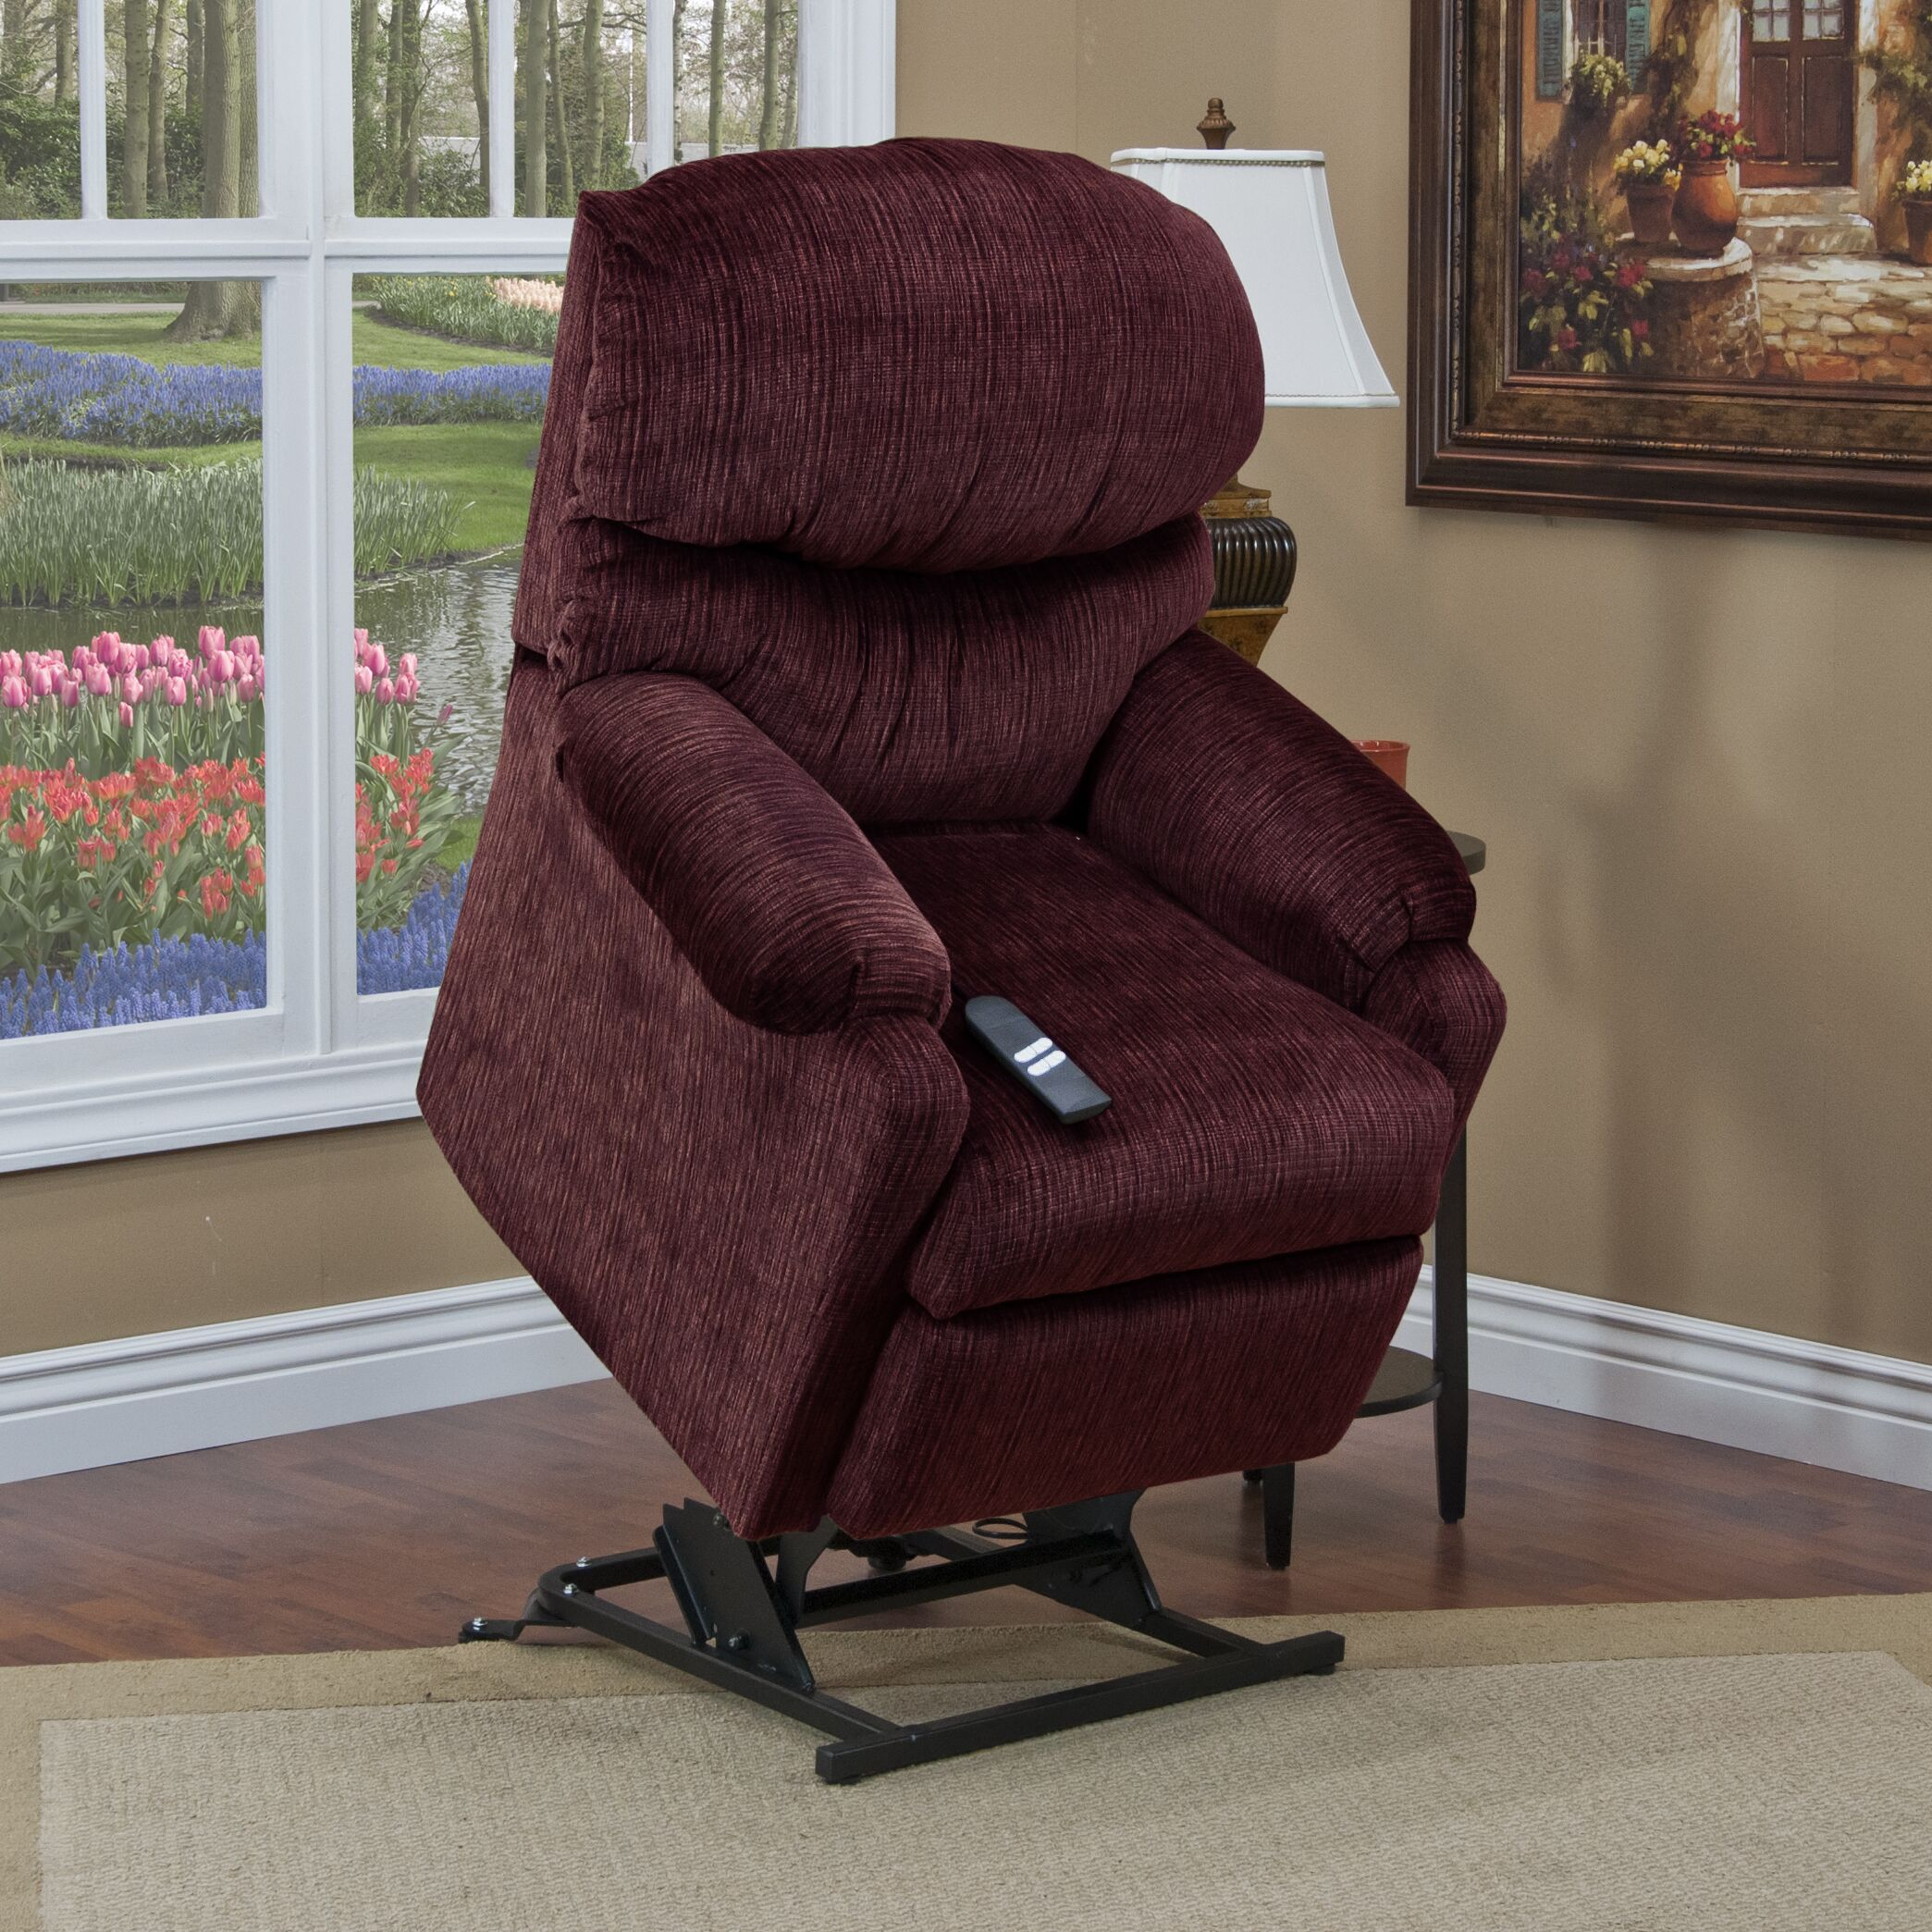 53 Series Petite Lift Assist Recliner Upholstery: Suede Crypton - Cocoa, Moveable Infrared Heat: No, Vibration and Heat: None